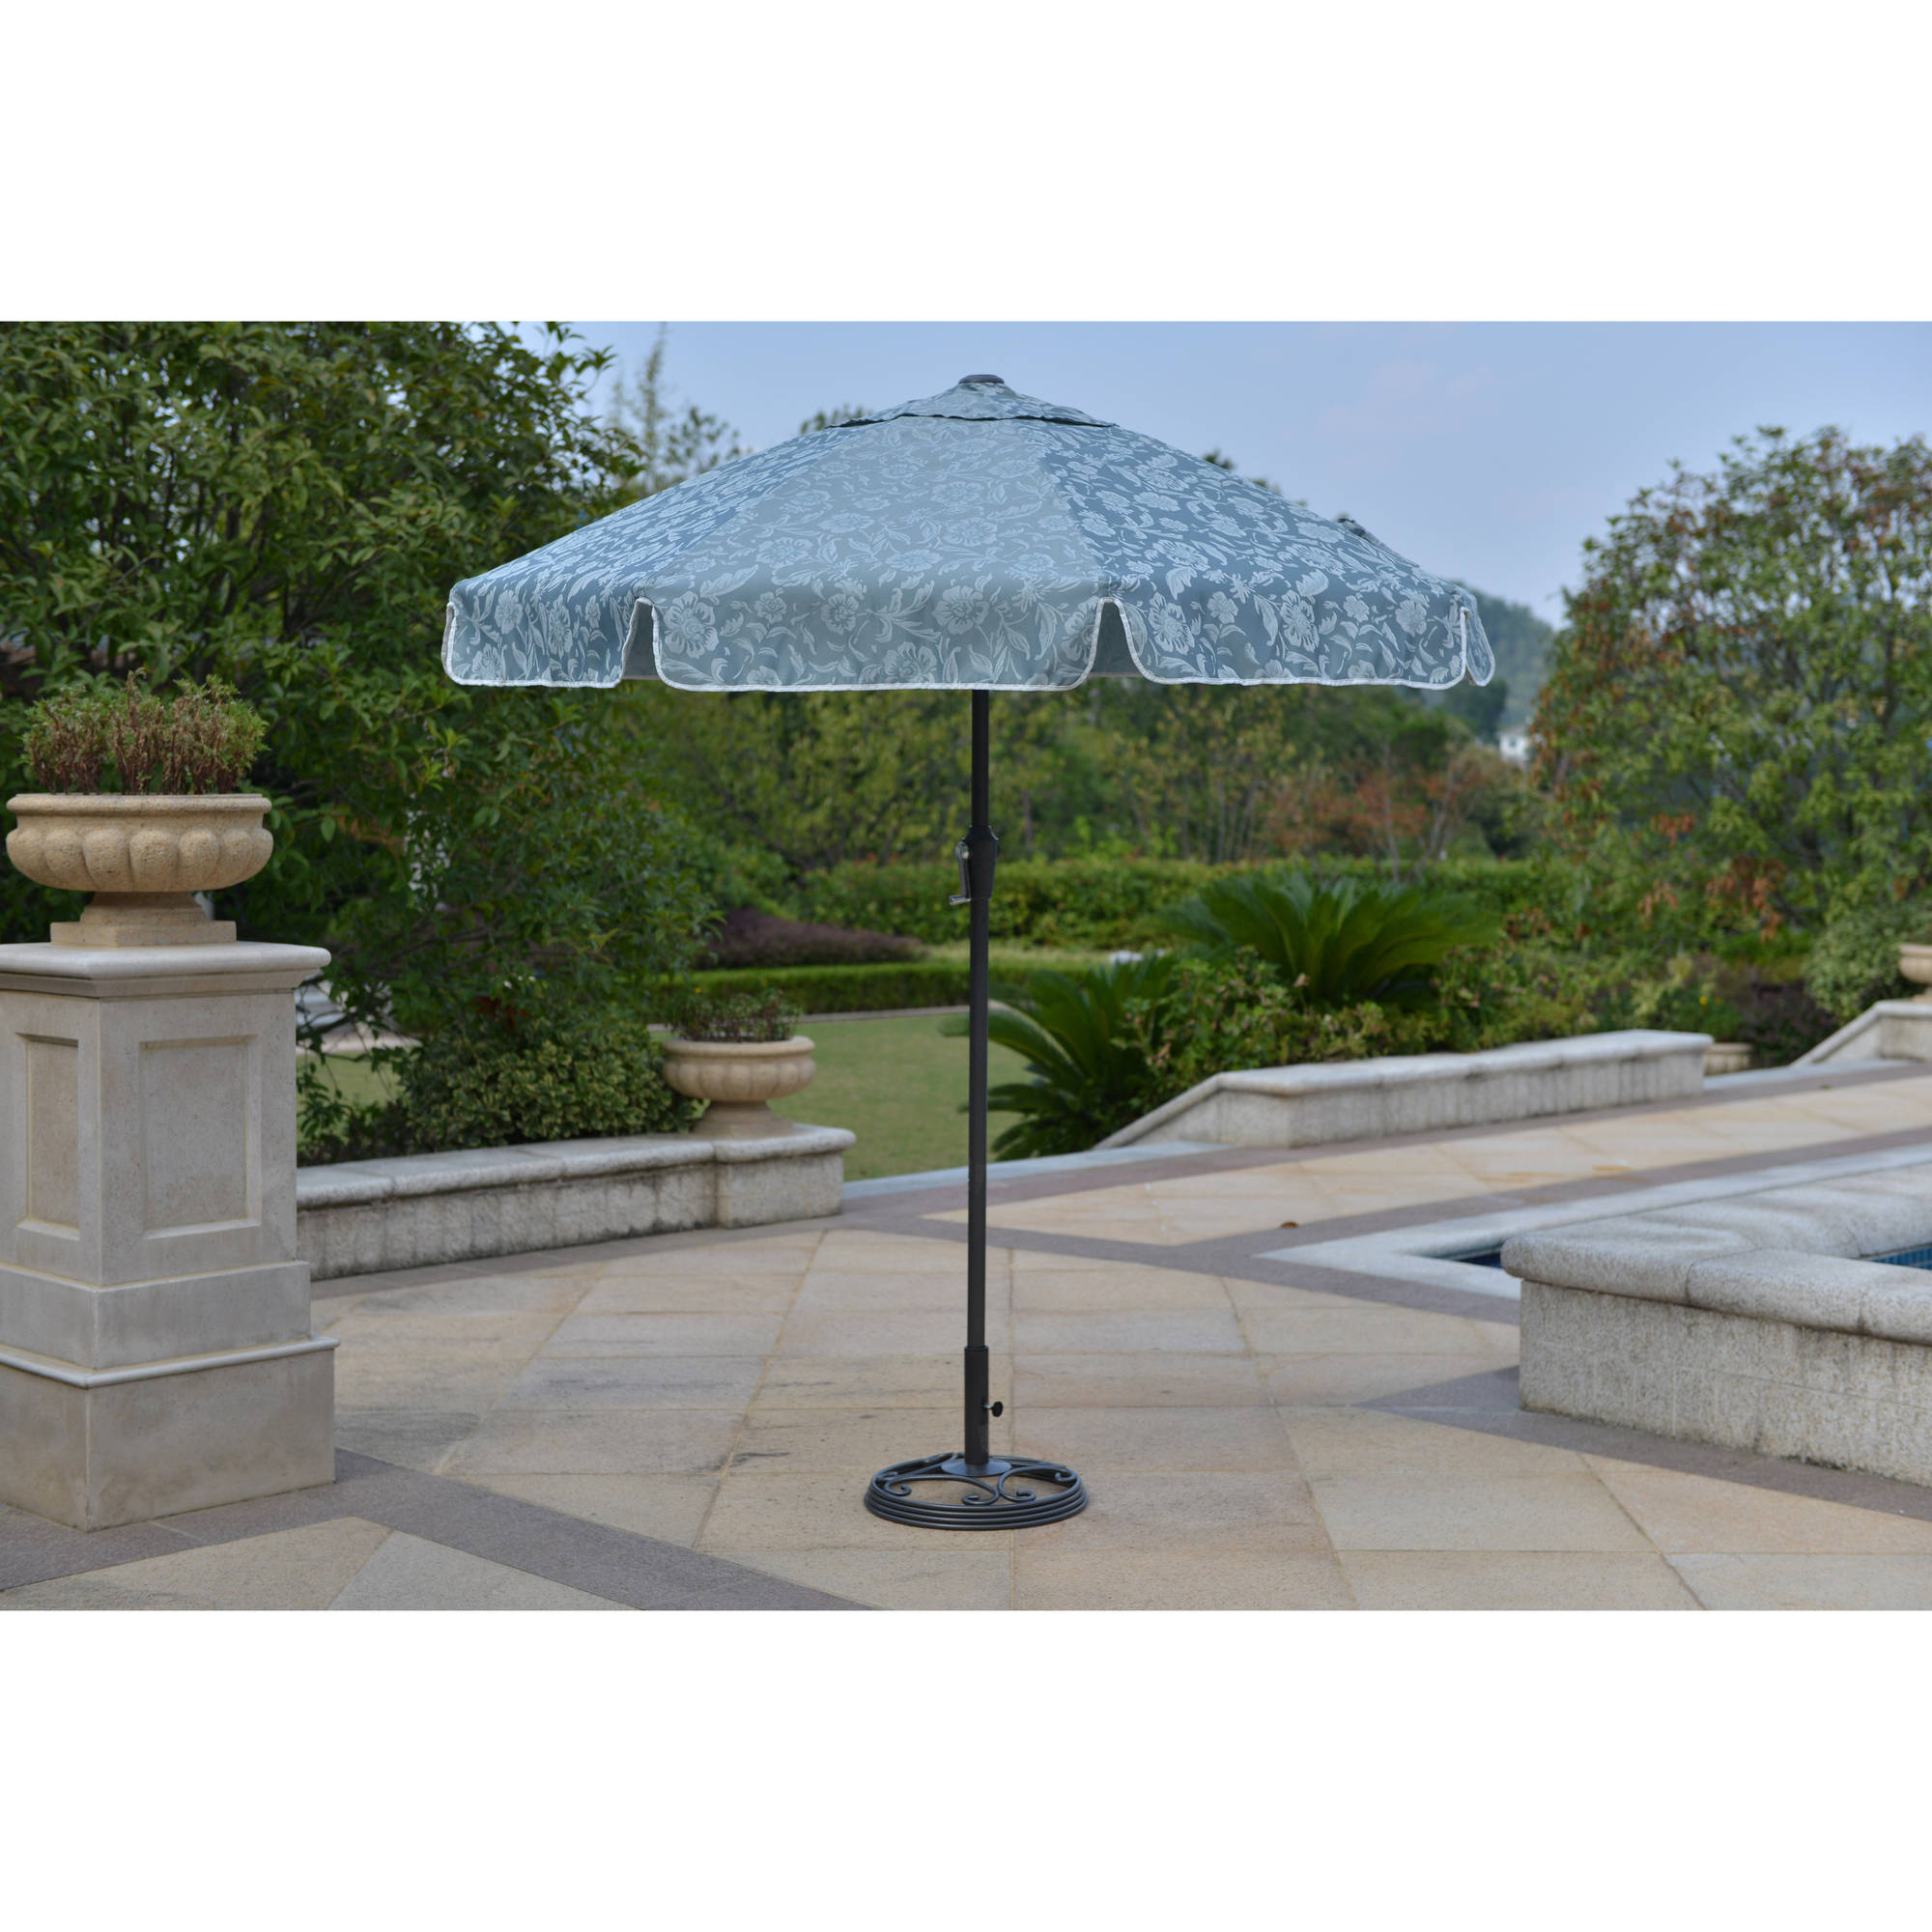 Mainstays Willow Springs 7' Garden Umbrella, Blue